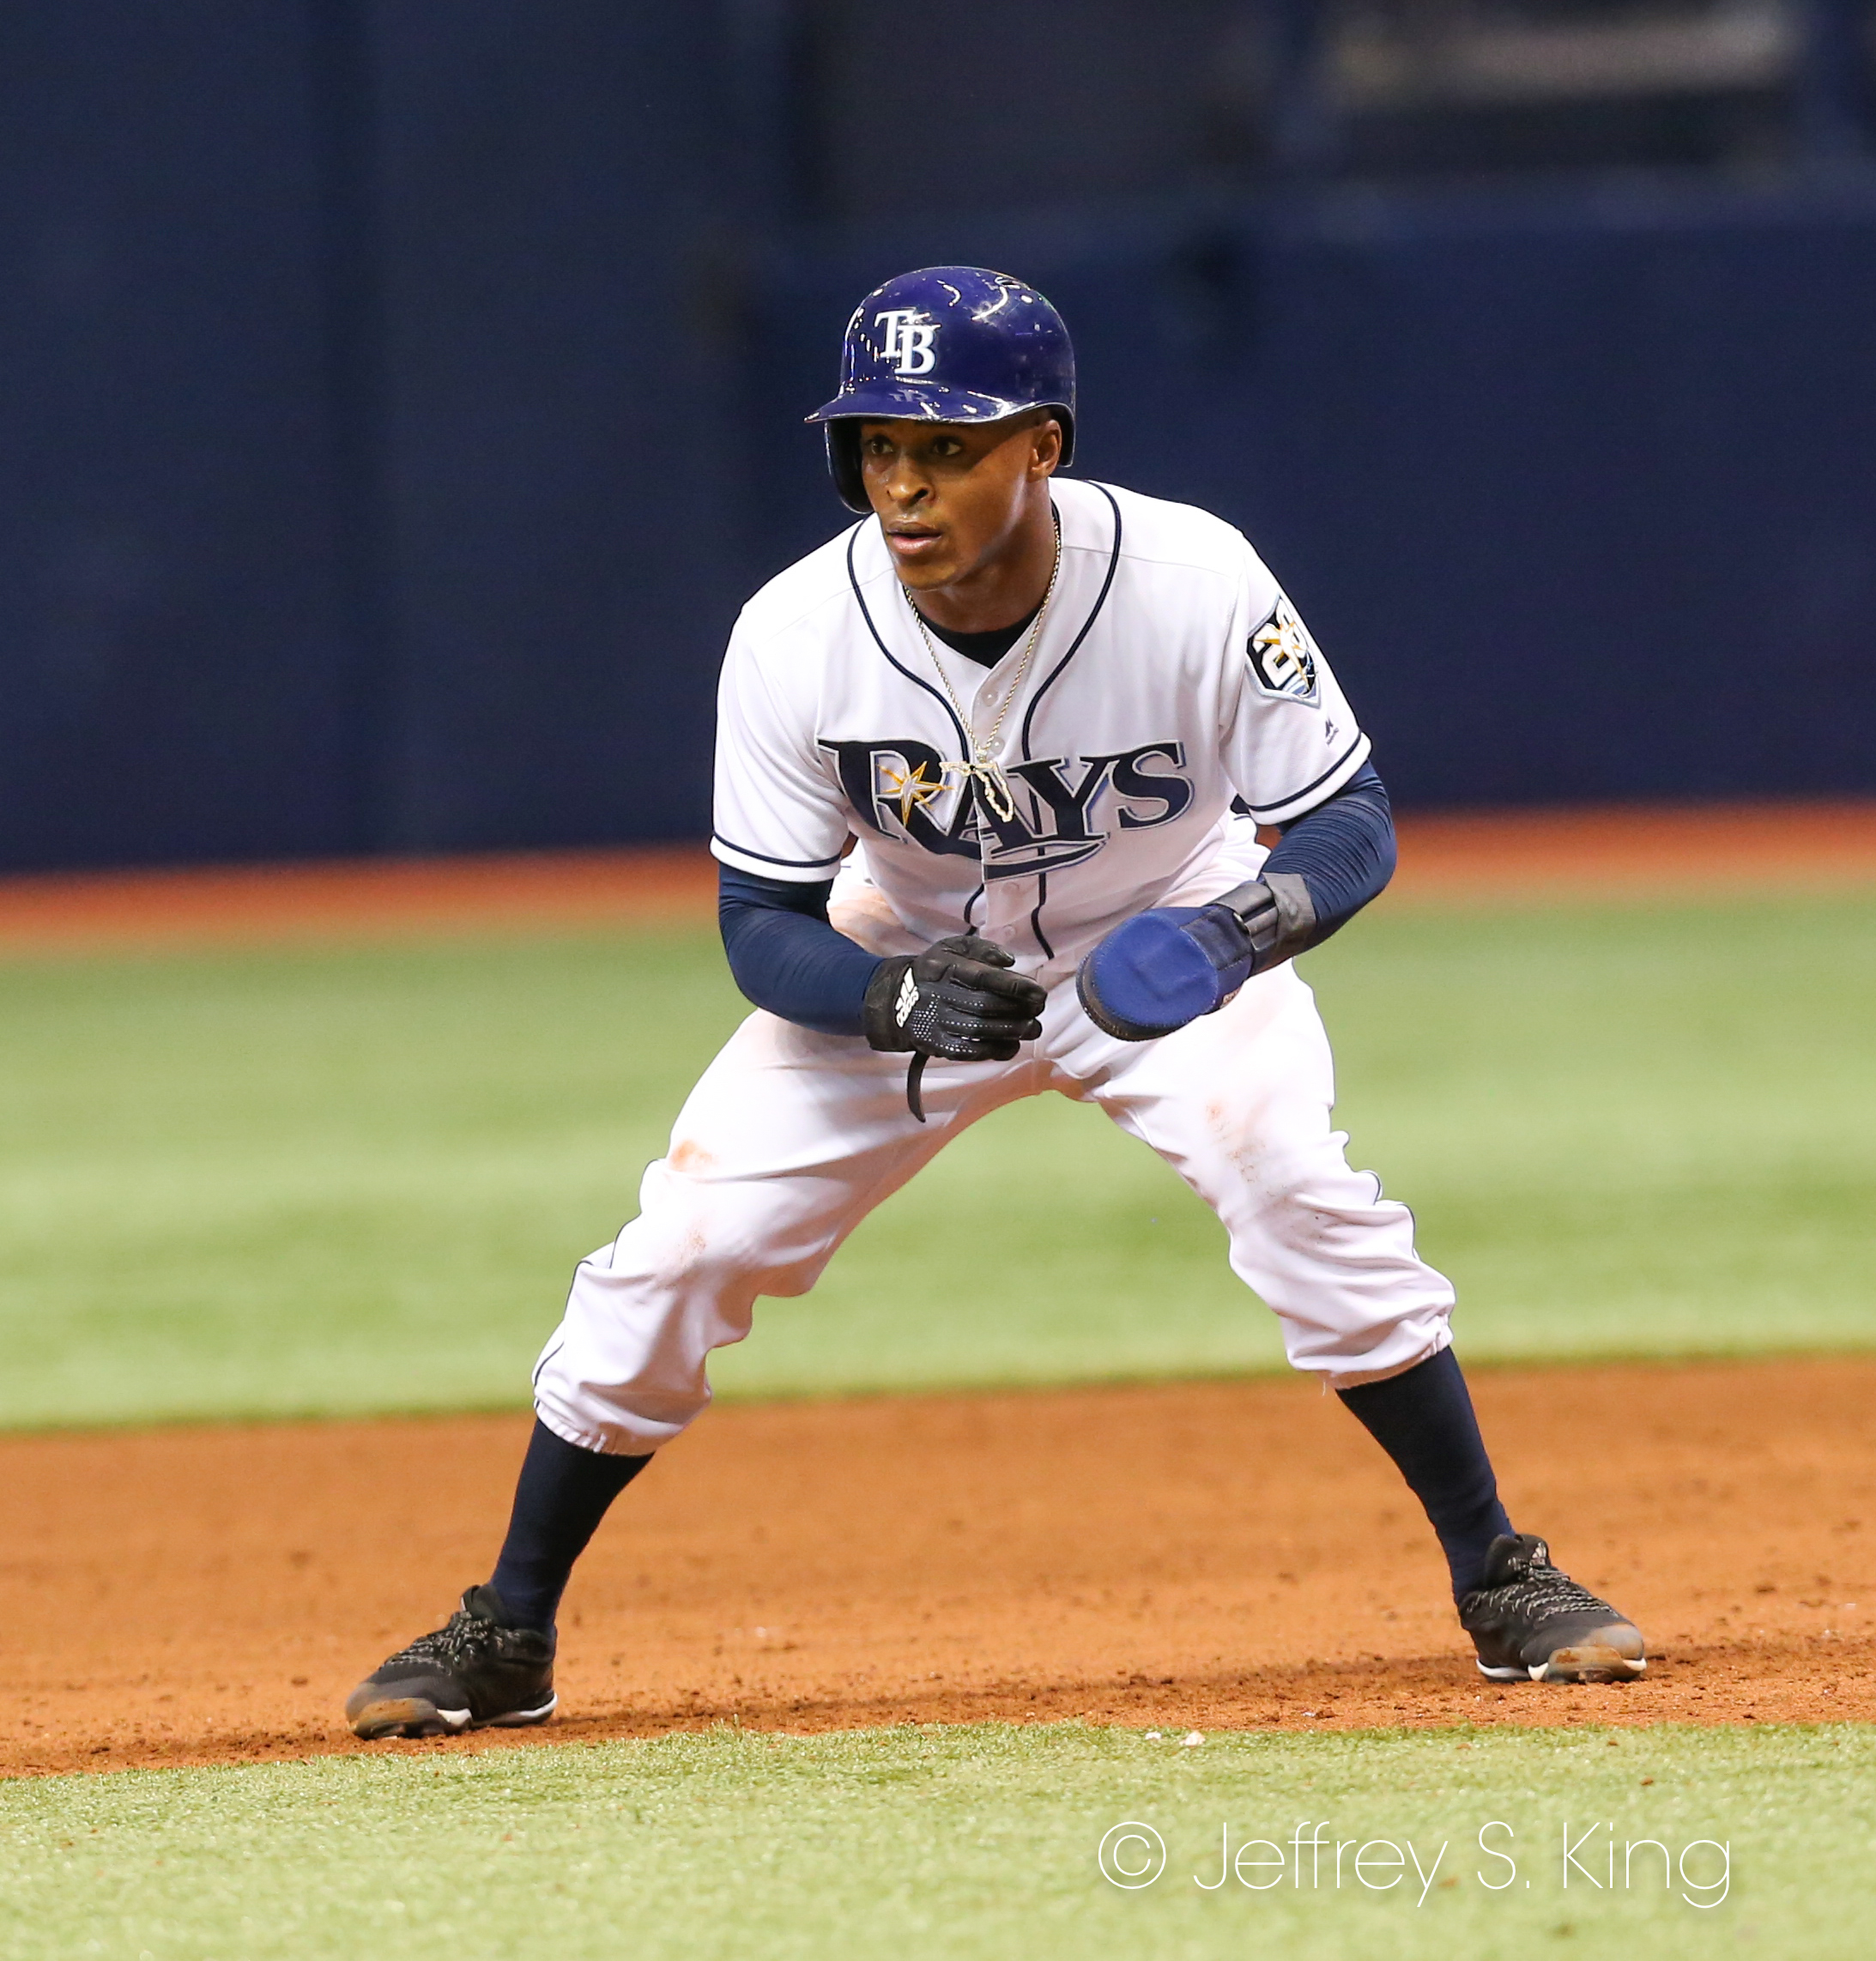 Smith scored the Rays' only run on an overthrow./JEFFREY S. KING